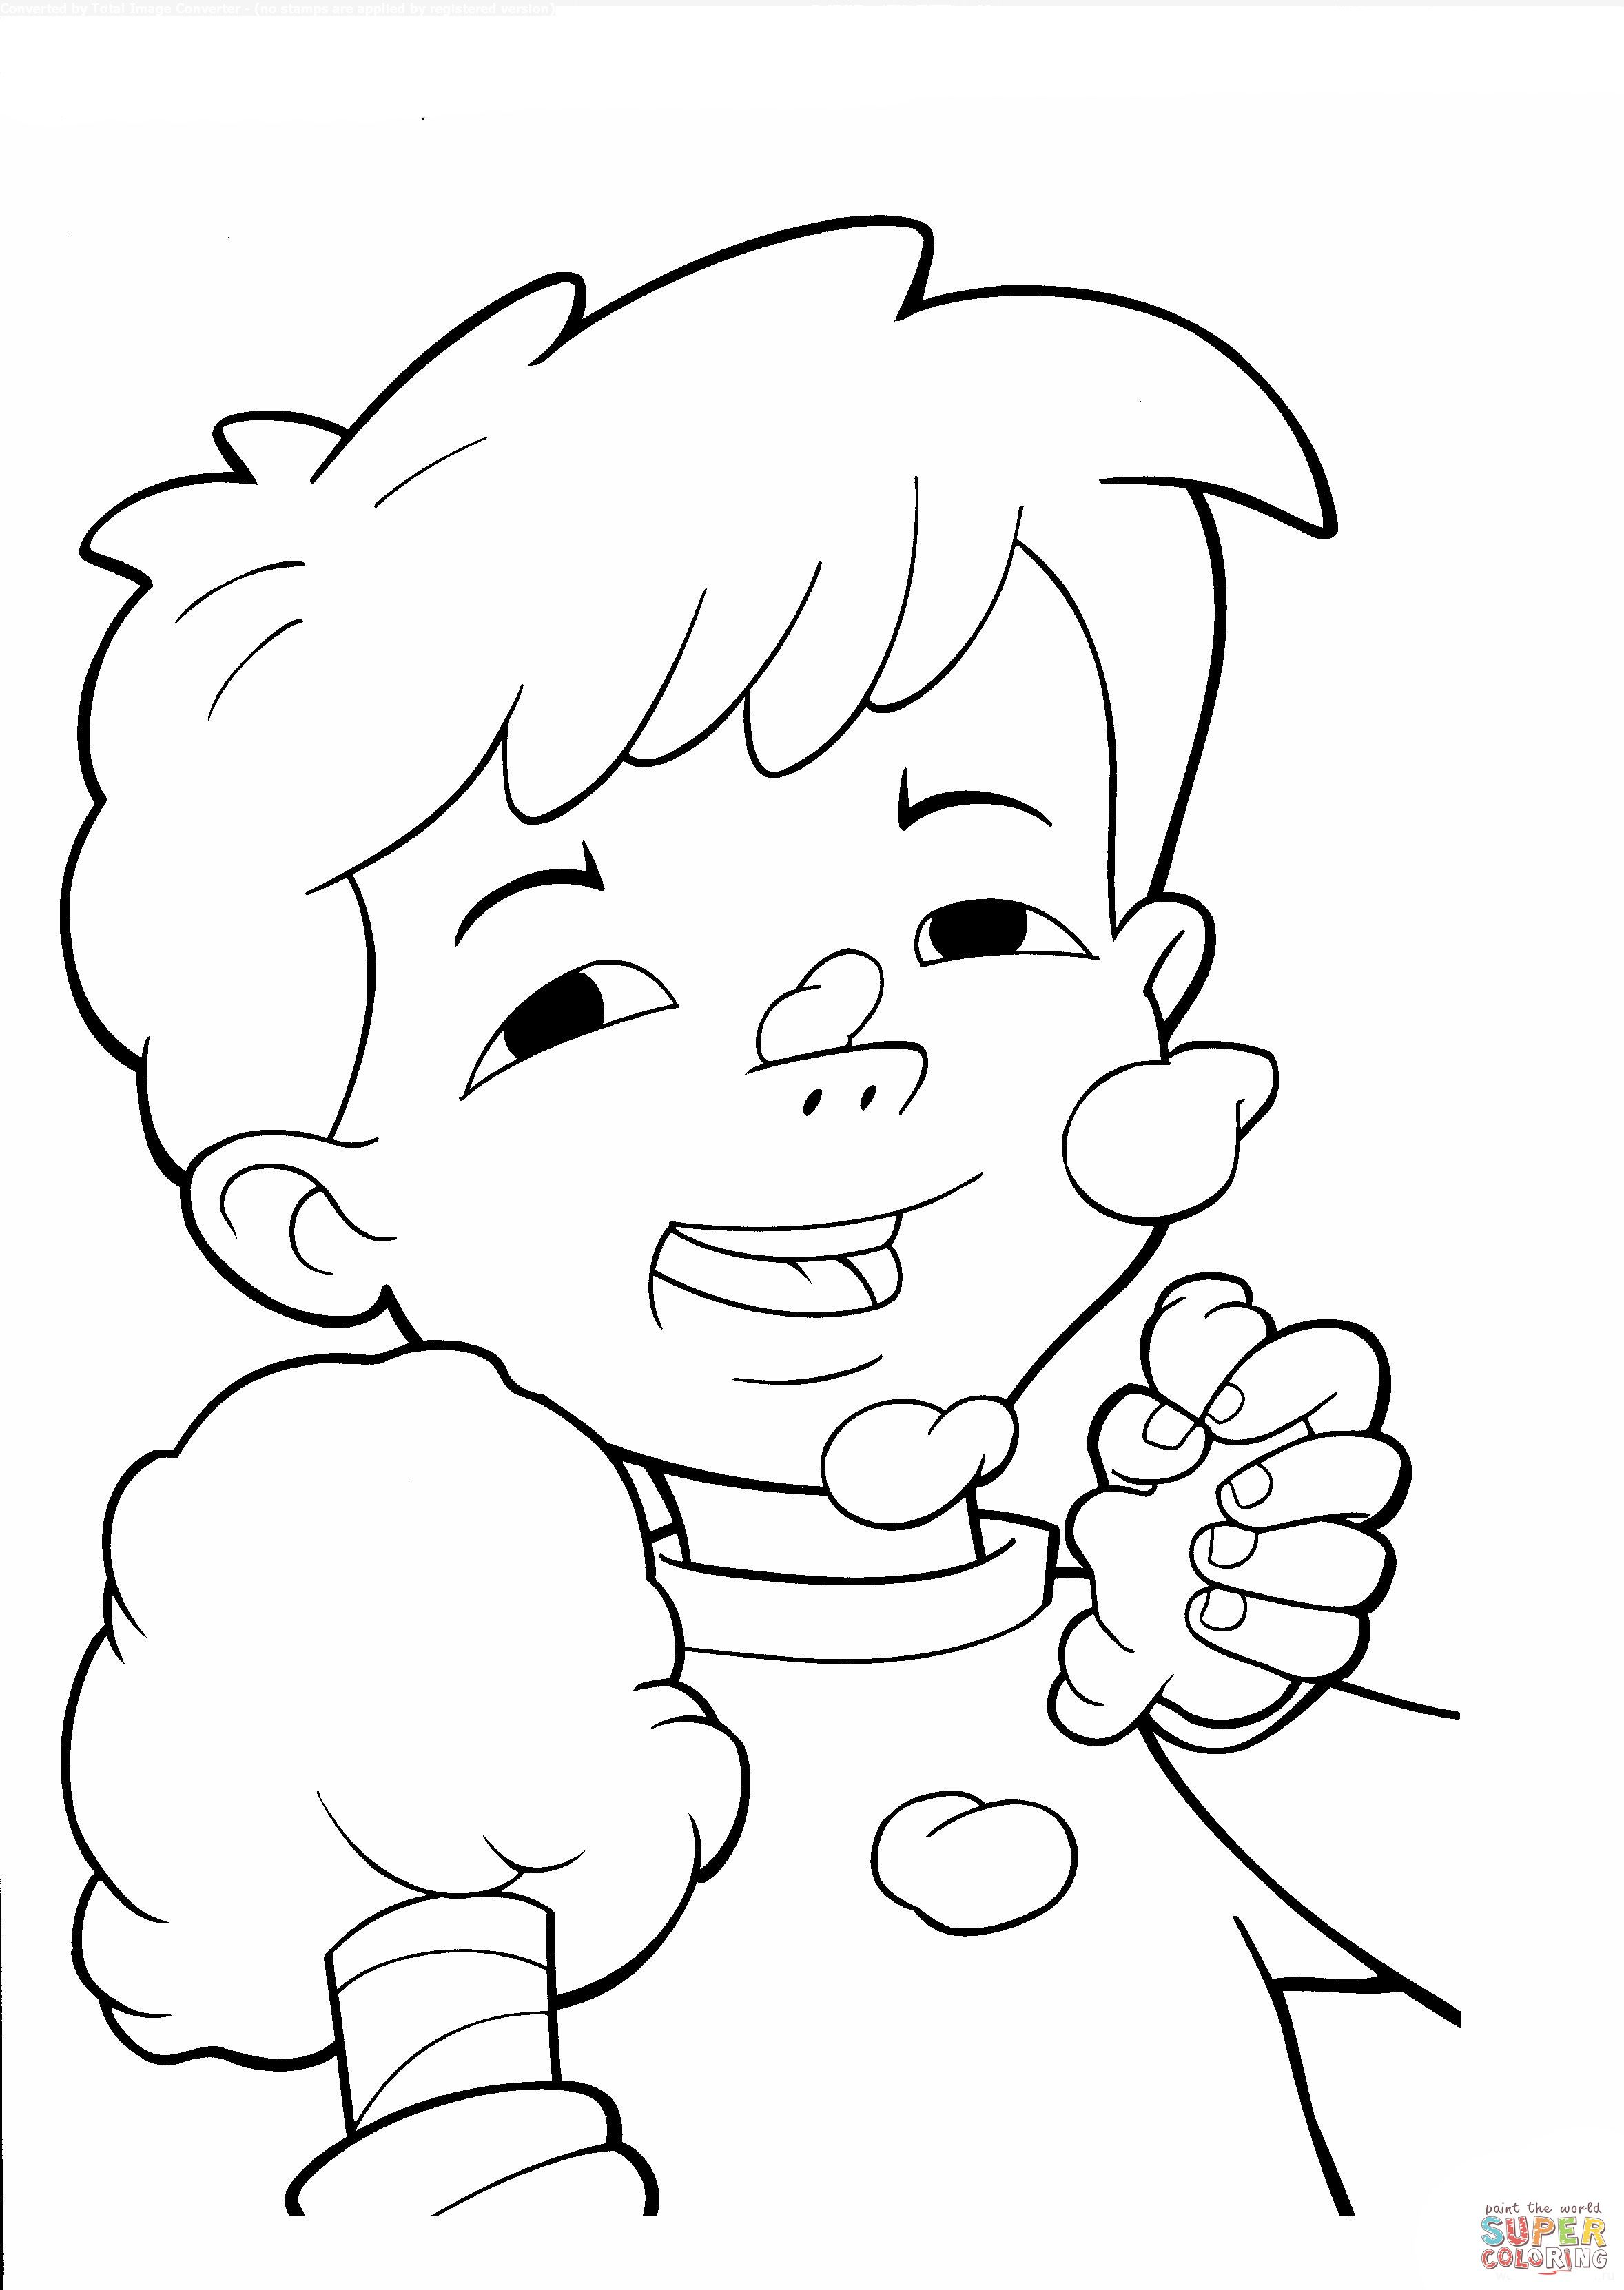 Max Eating Cotton Candy Coloring Page | I ♡ Dragon Tales ...